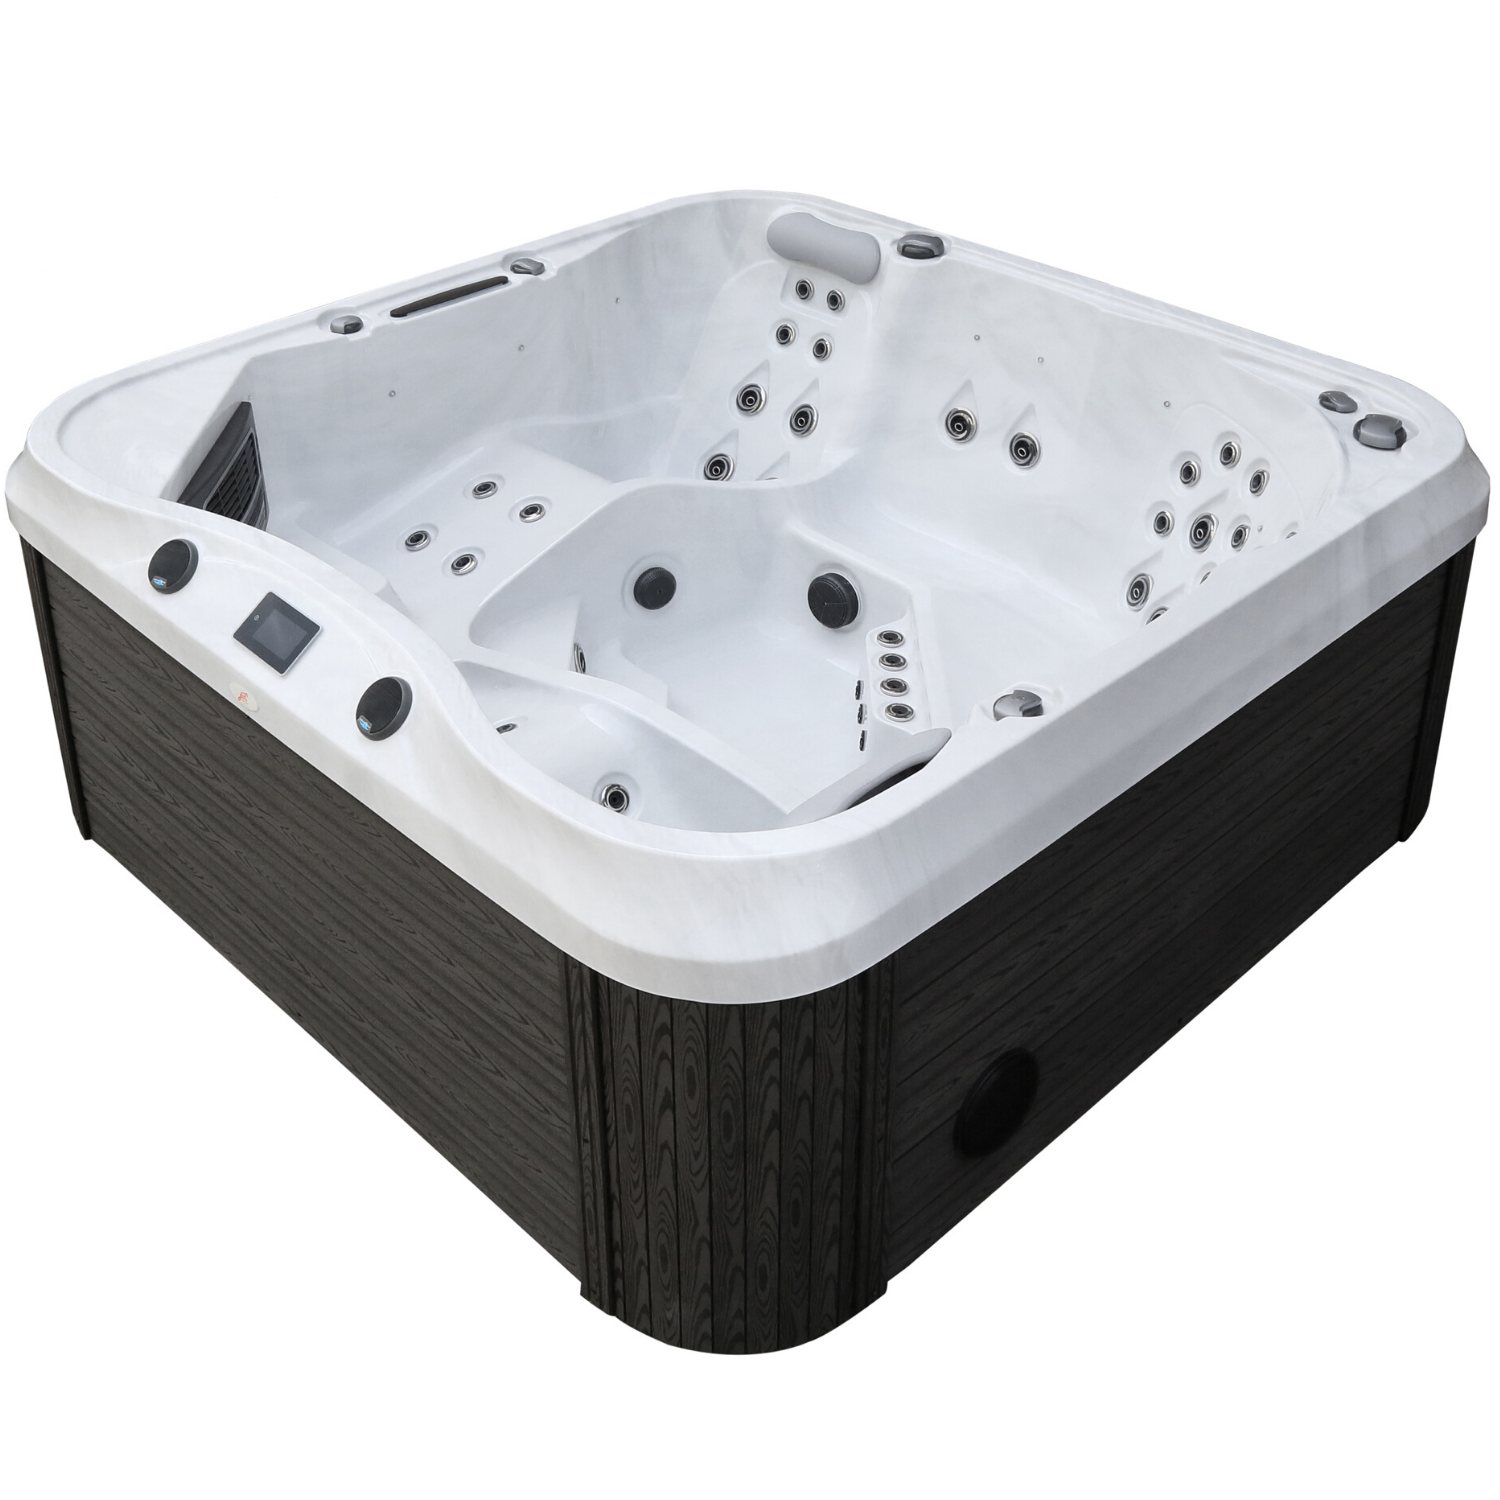 Just Hot Tubs - Luxe Range - Lugna